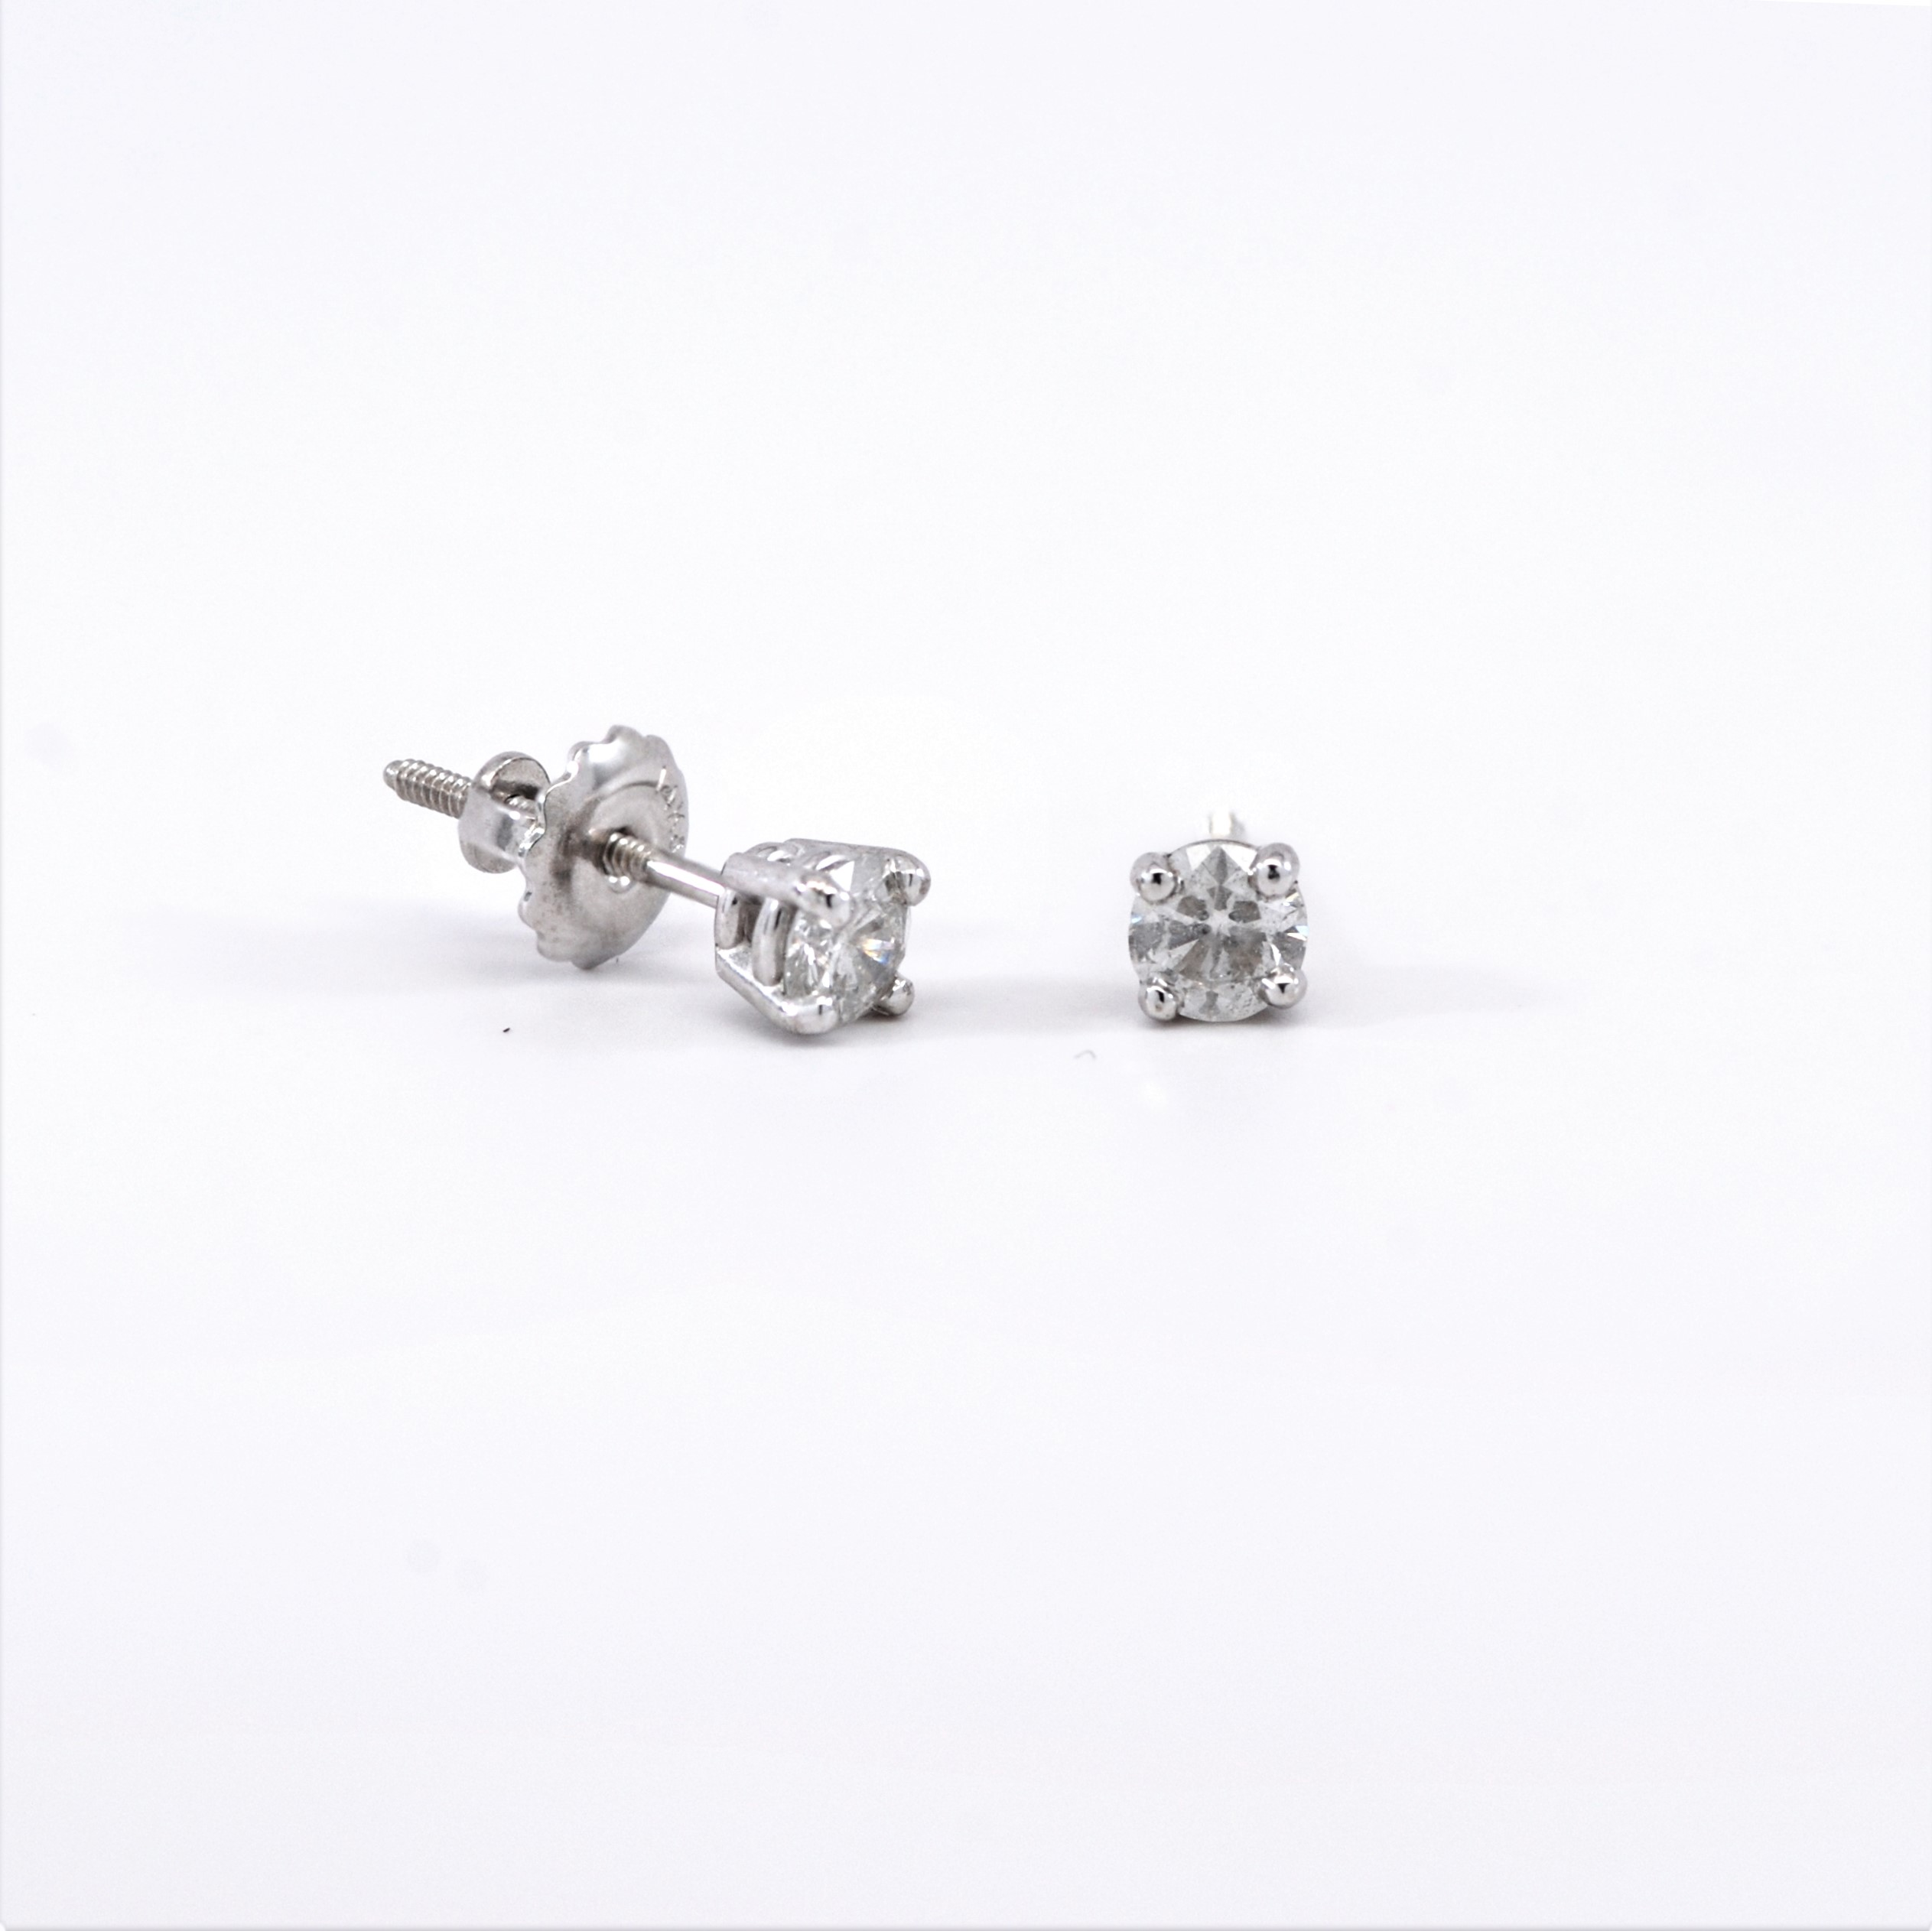 jewellery shooting products stud rachel jackson earrings star london ursa studs diamond silver